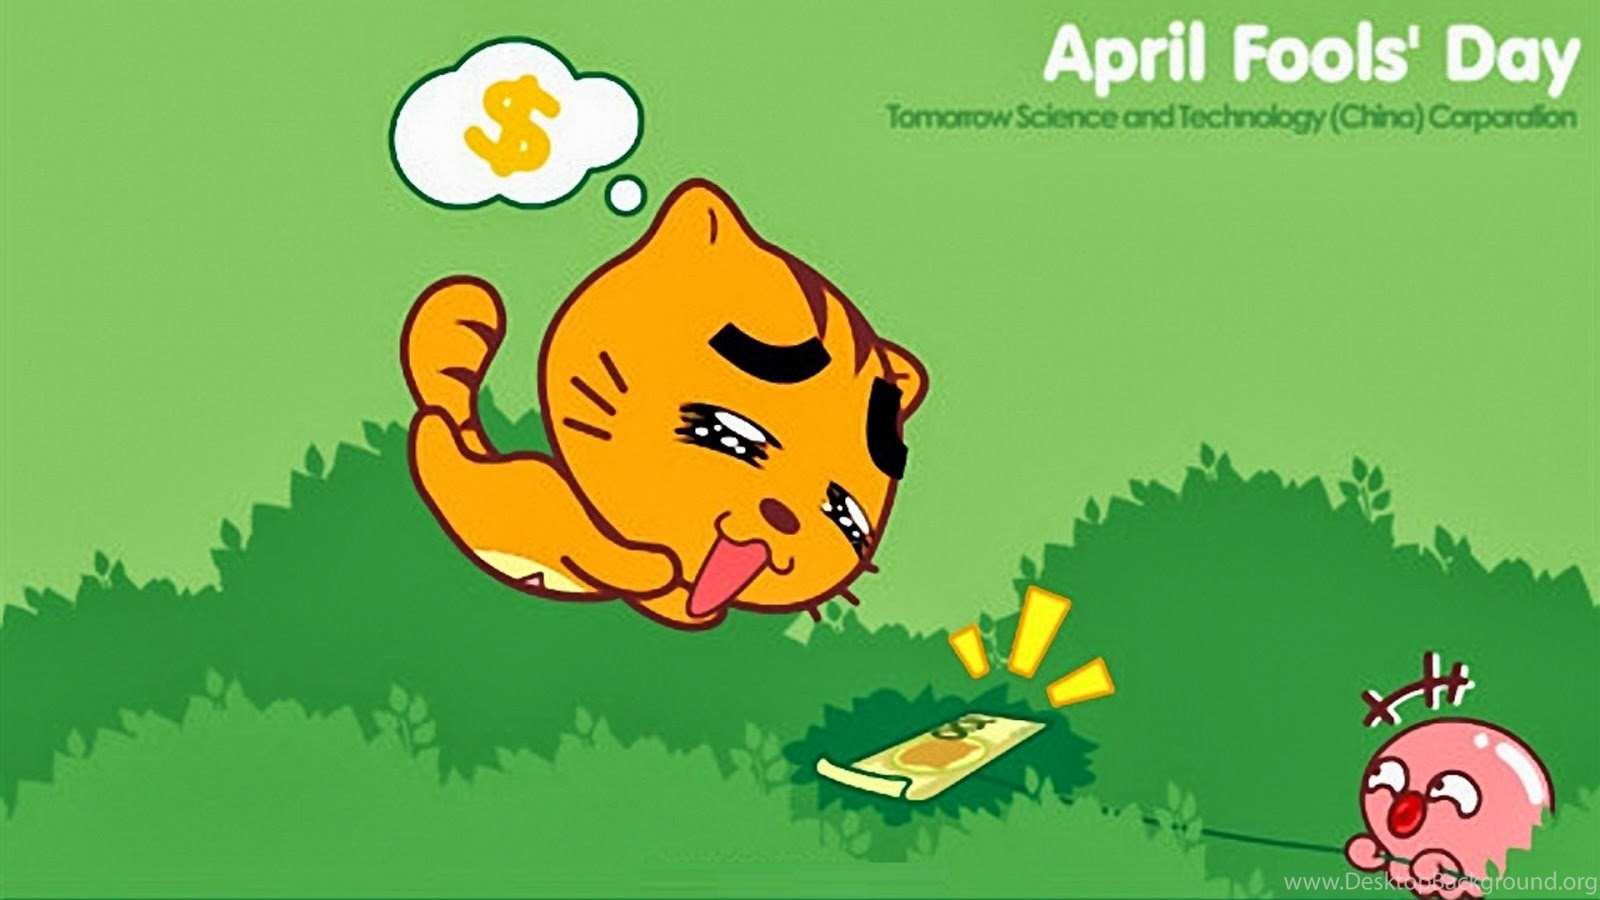 Happy 1st April Fools Day Full Hd Wallpapers Desktop Background